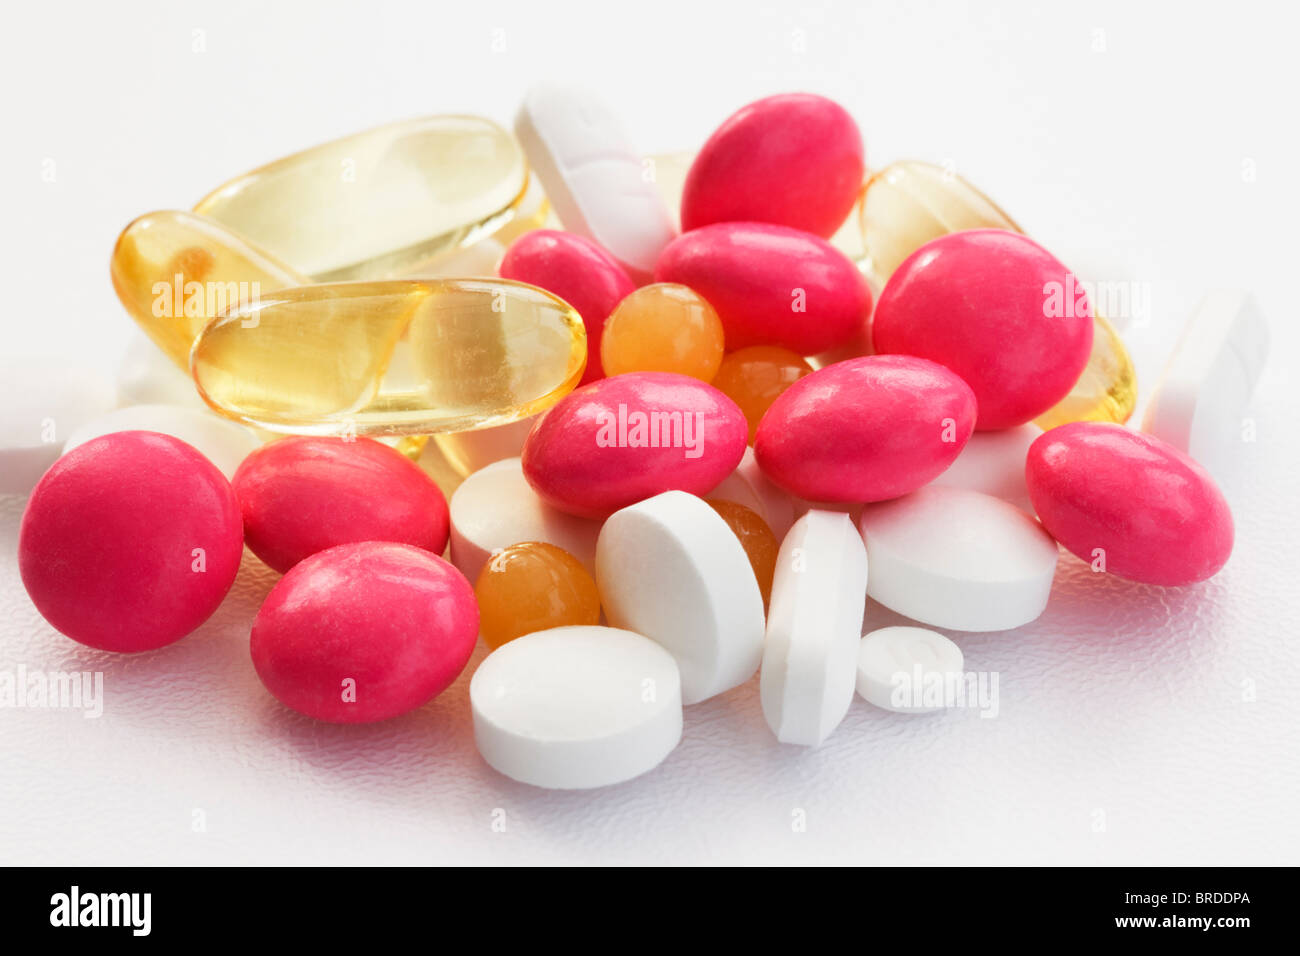 Close-up of an assortment of pills on a white background - Stock Image